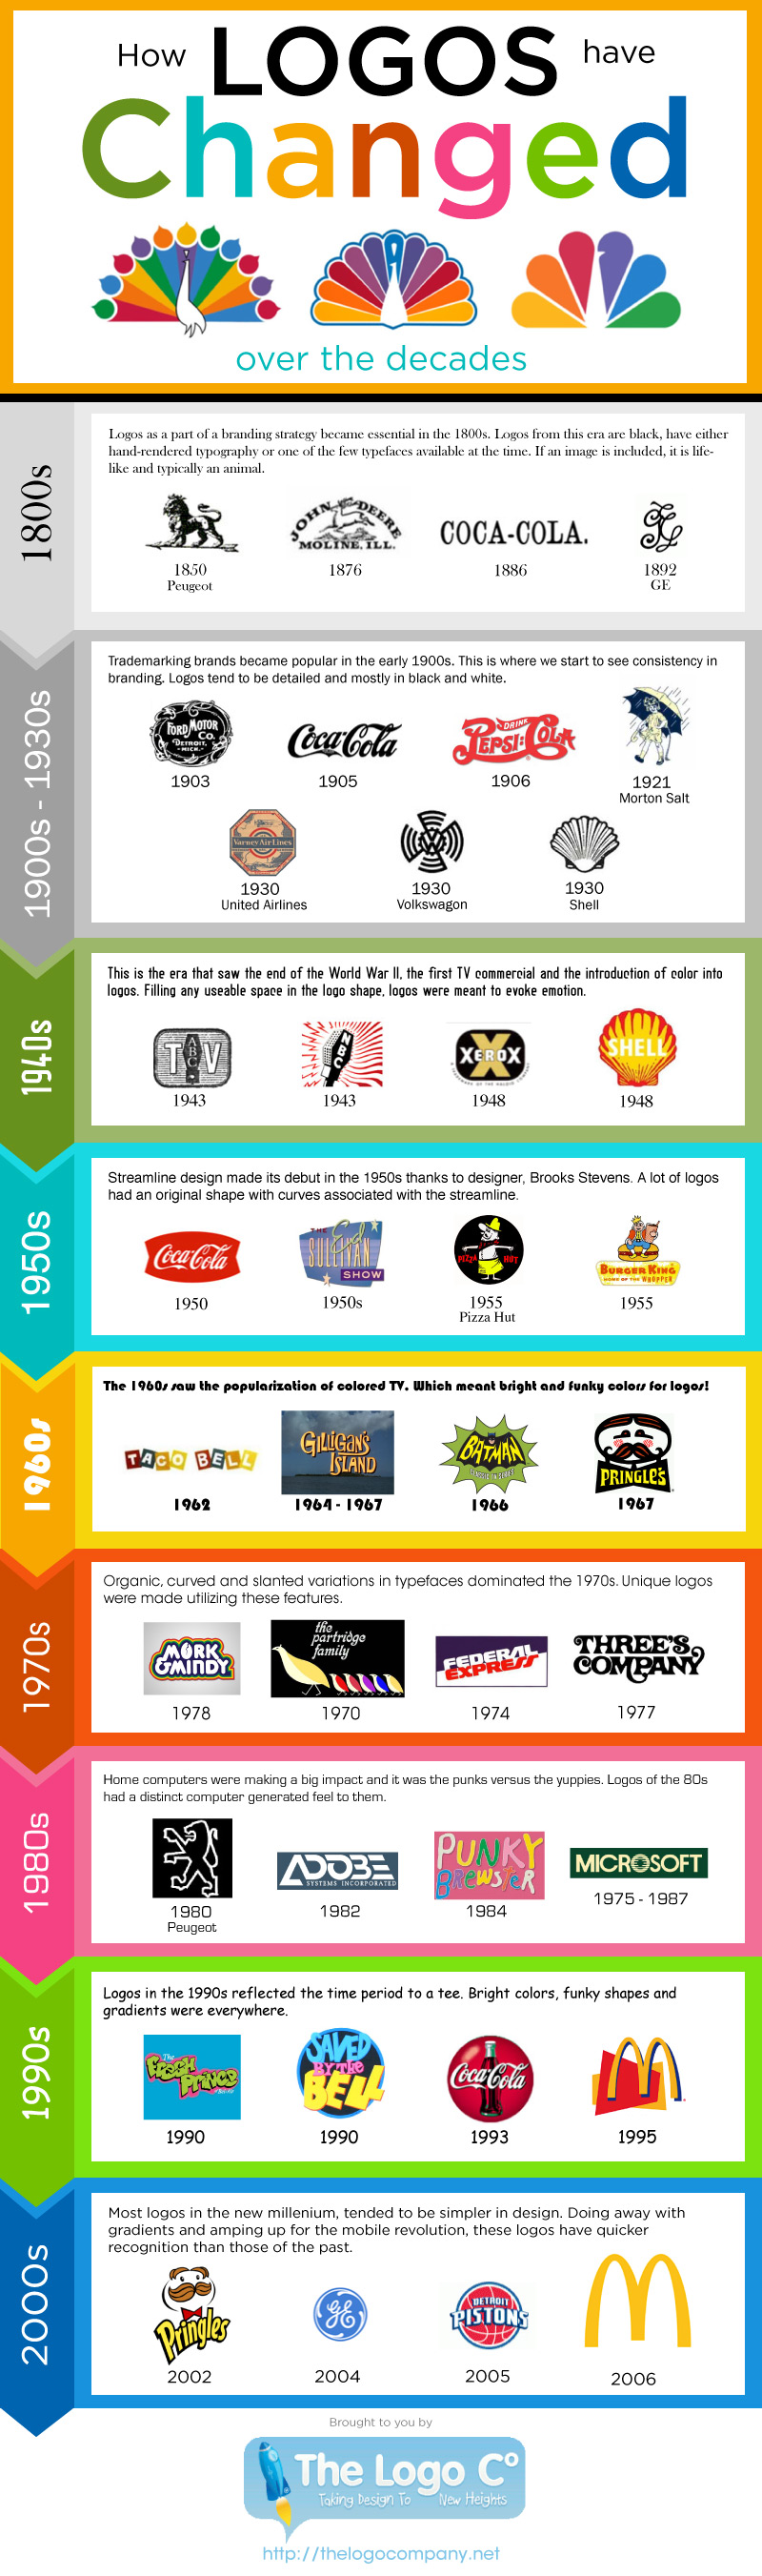 logo-evolutions-infographic-plaza